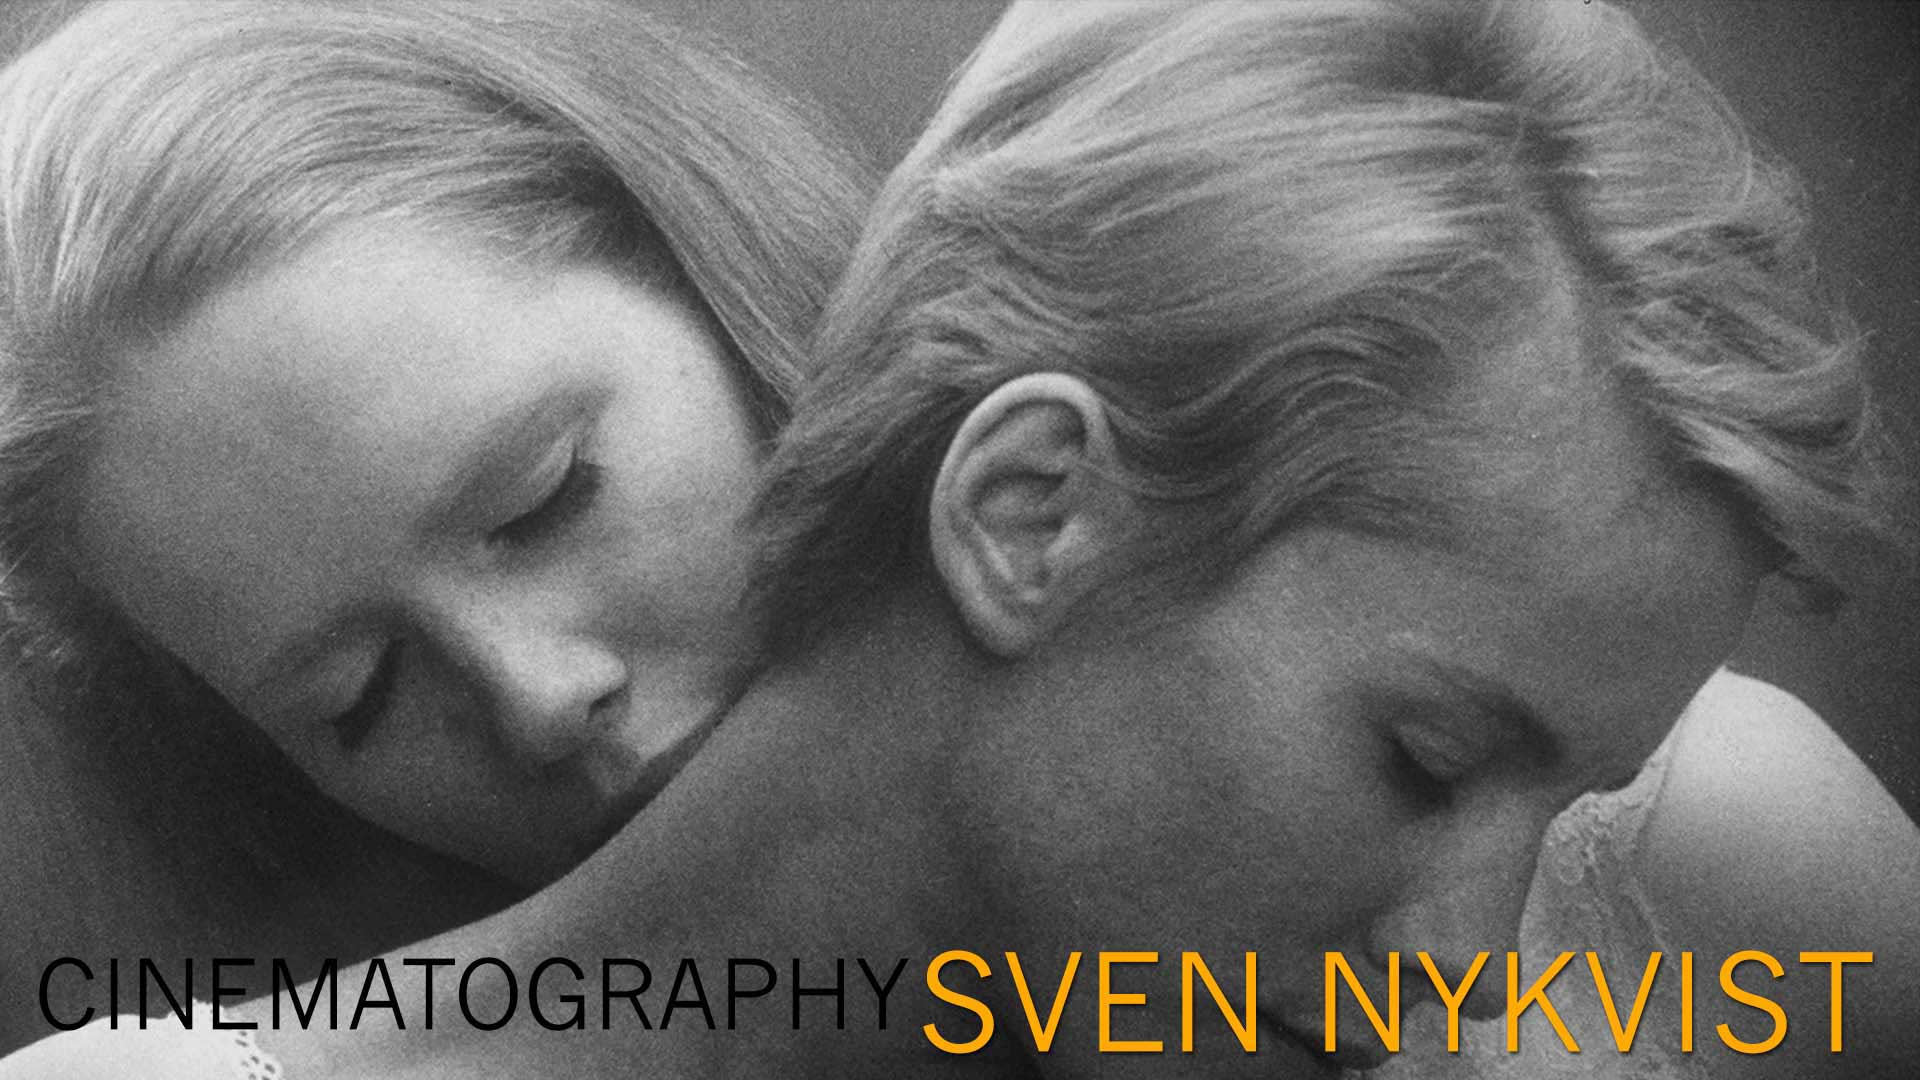 Understanding the Cinematography of Sven Nykvist